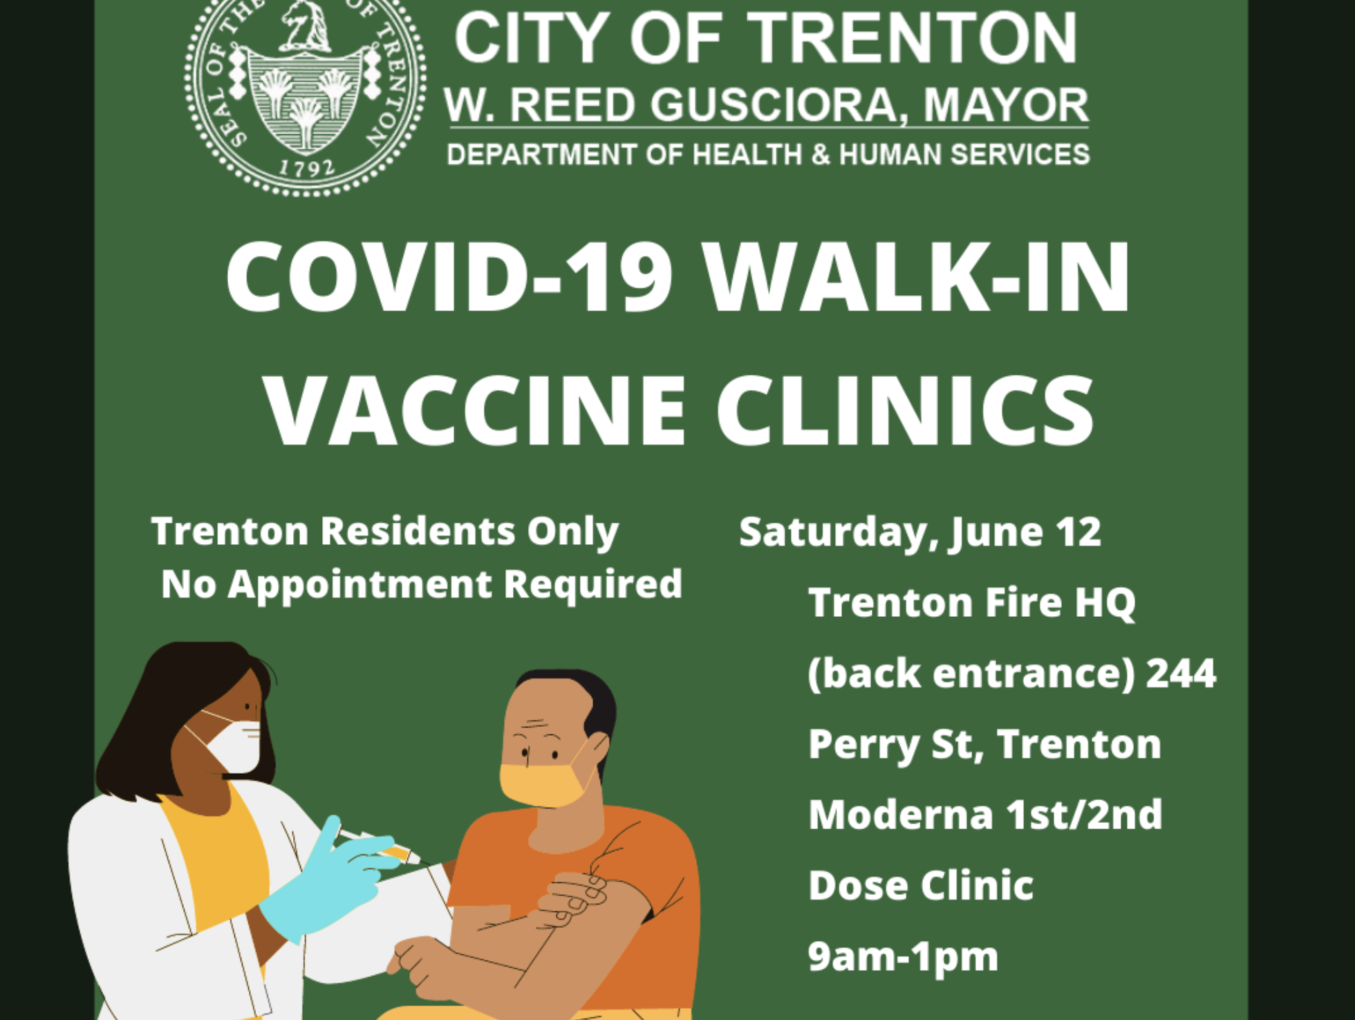 Walk-In Vaccine Clinic Today